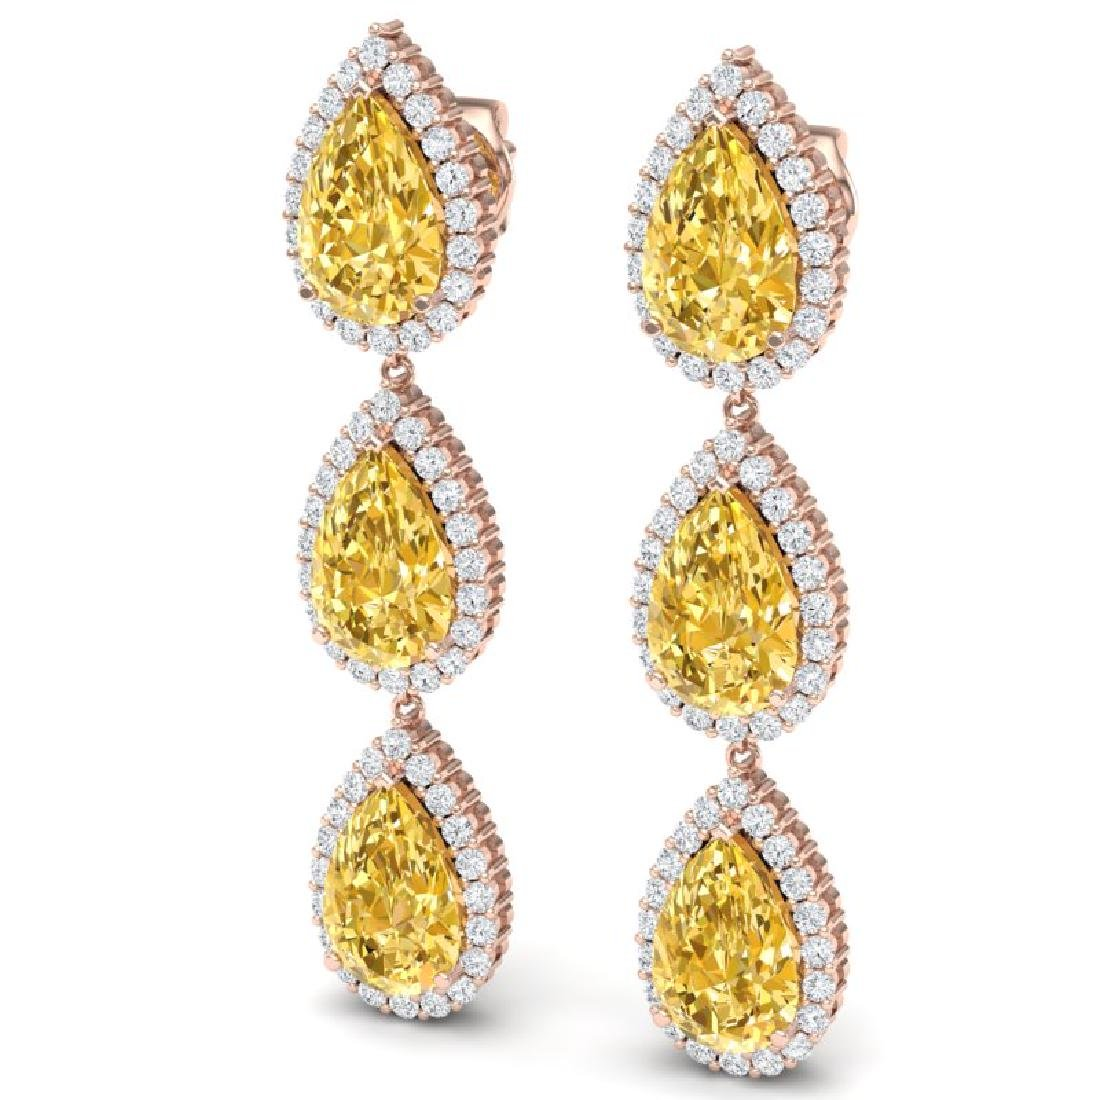 24.23 CTW Royalty Canary Citrine & VS Diamond Earrings - 2